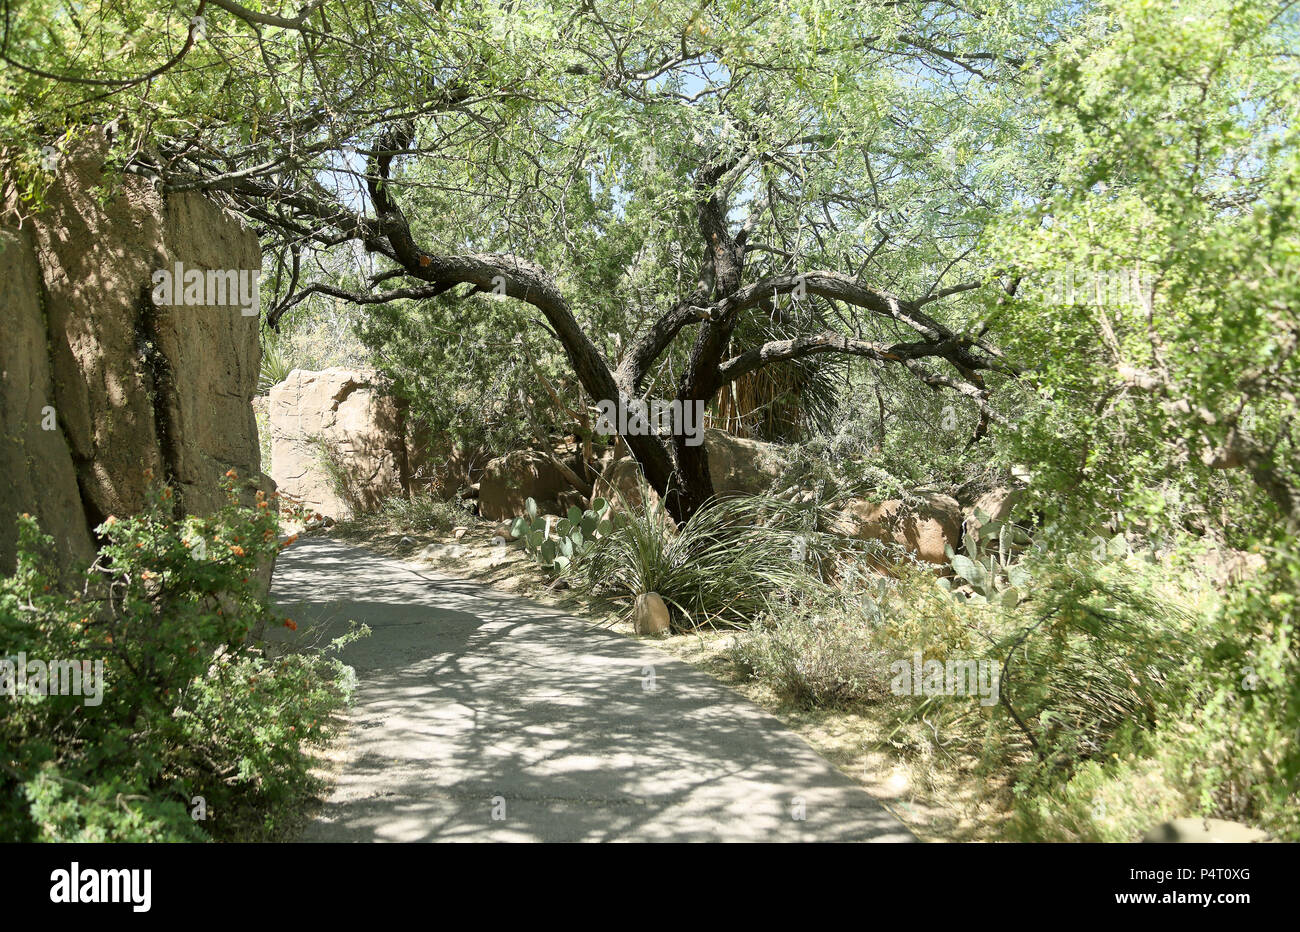 Garden pathway with cacti, trees and bushes in southern Arizona on a sunny day - Stock Image